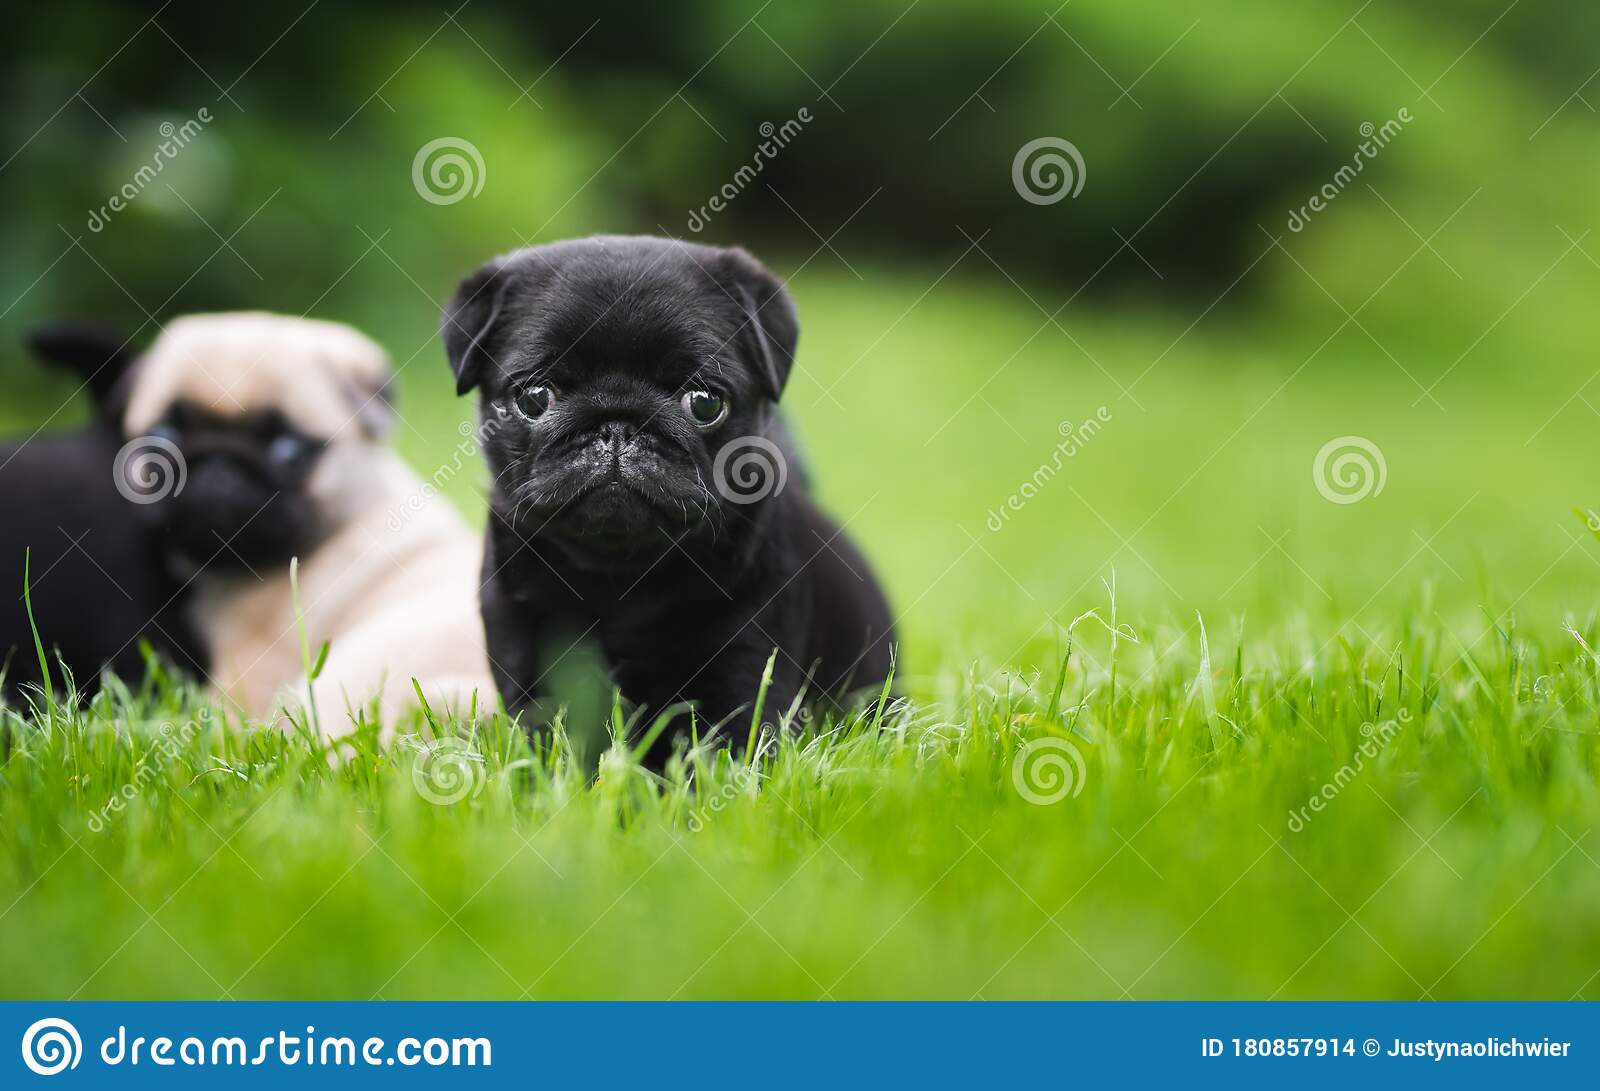 Black 6 Week Old Pug Puppy In Green Grass Portrait Stock Photo Image Of Puppy Funny 180857914